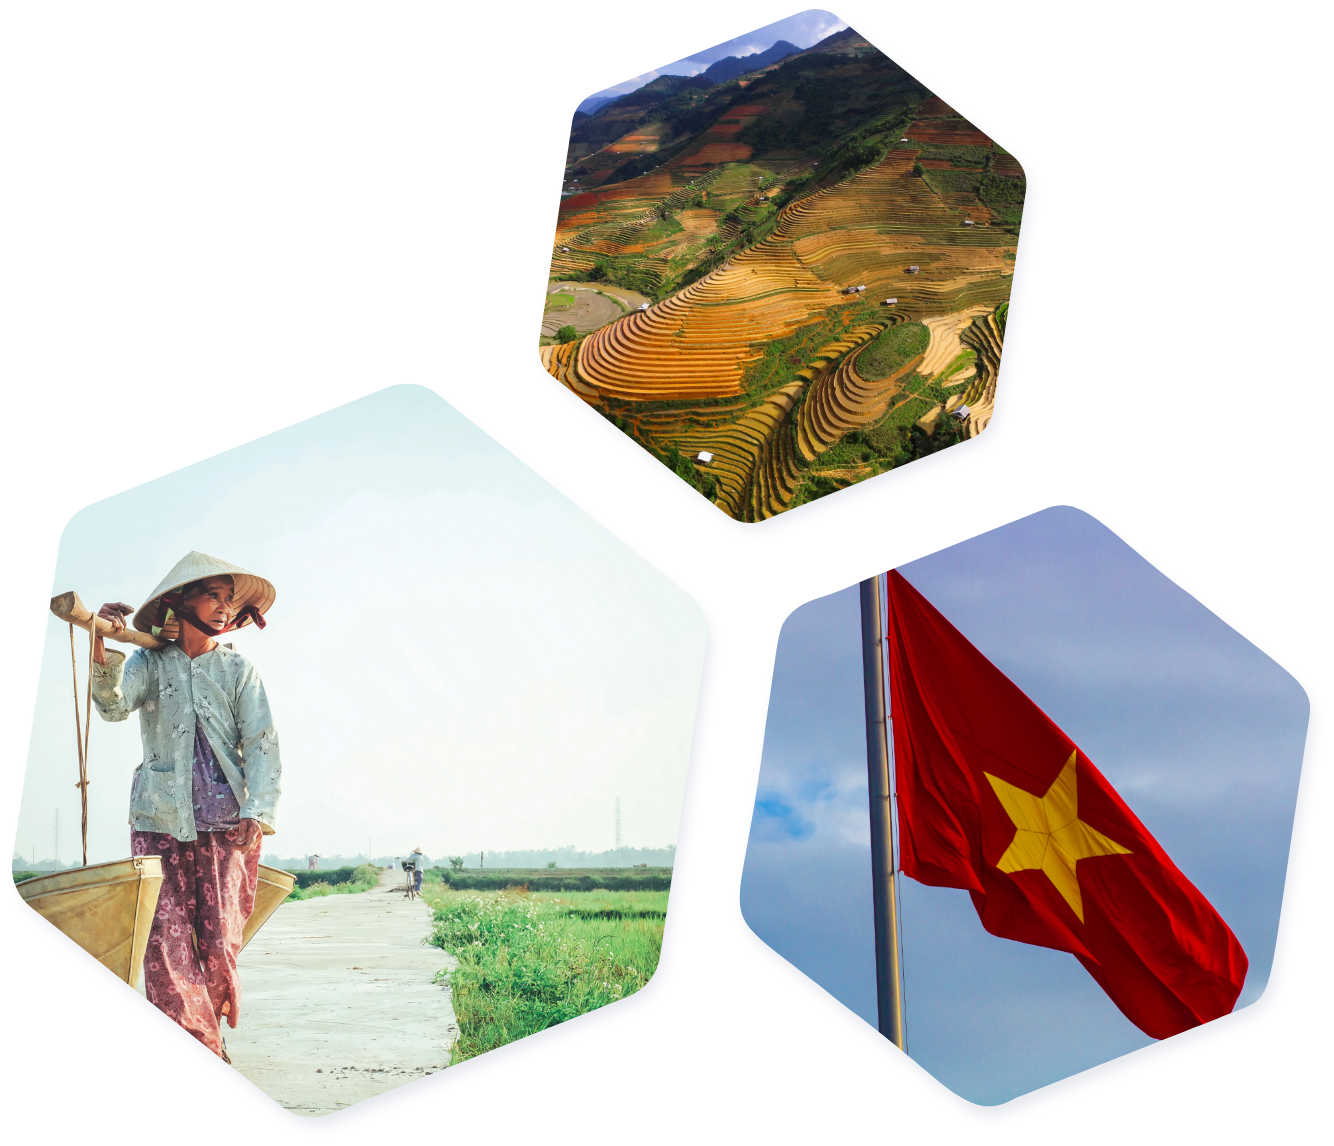 Vietnam images hexagons